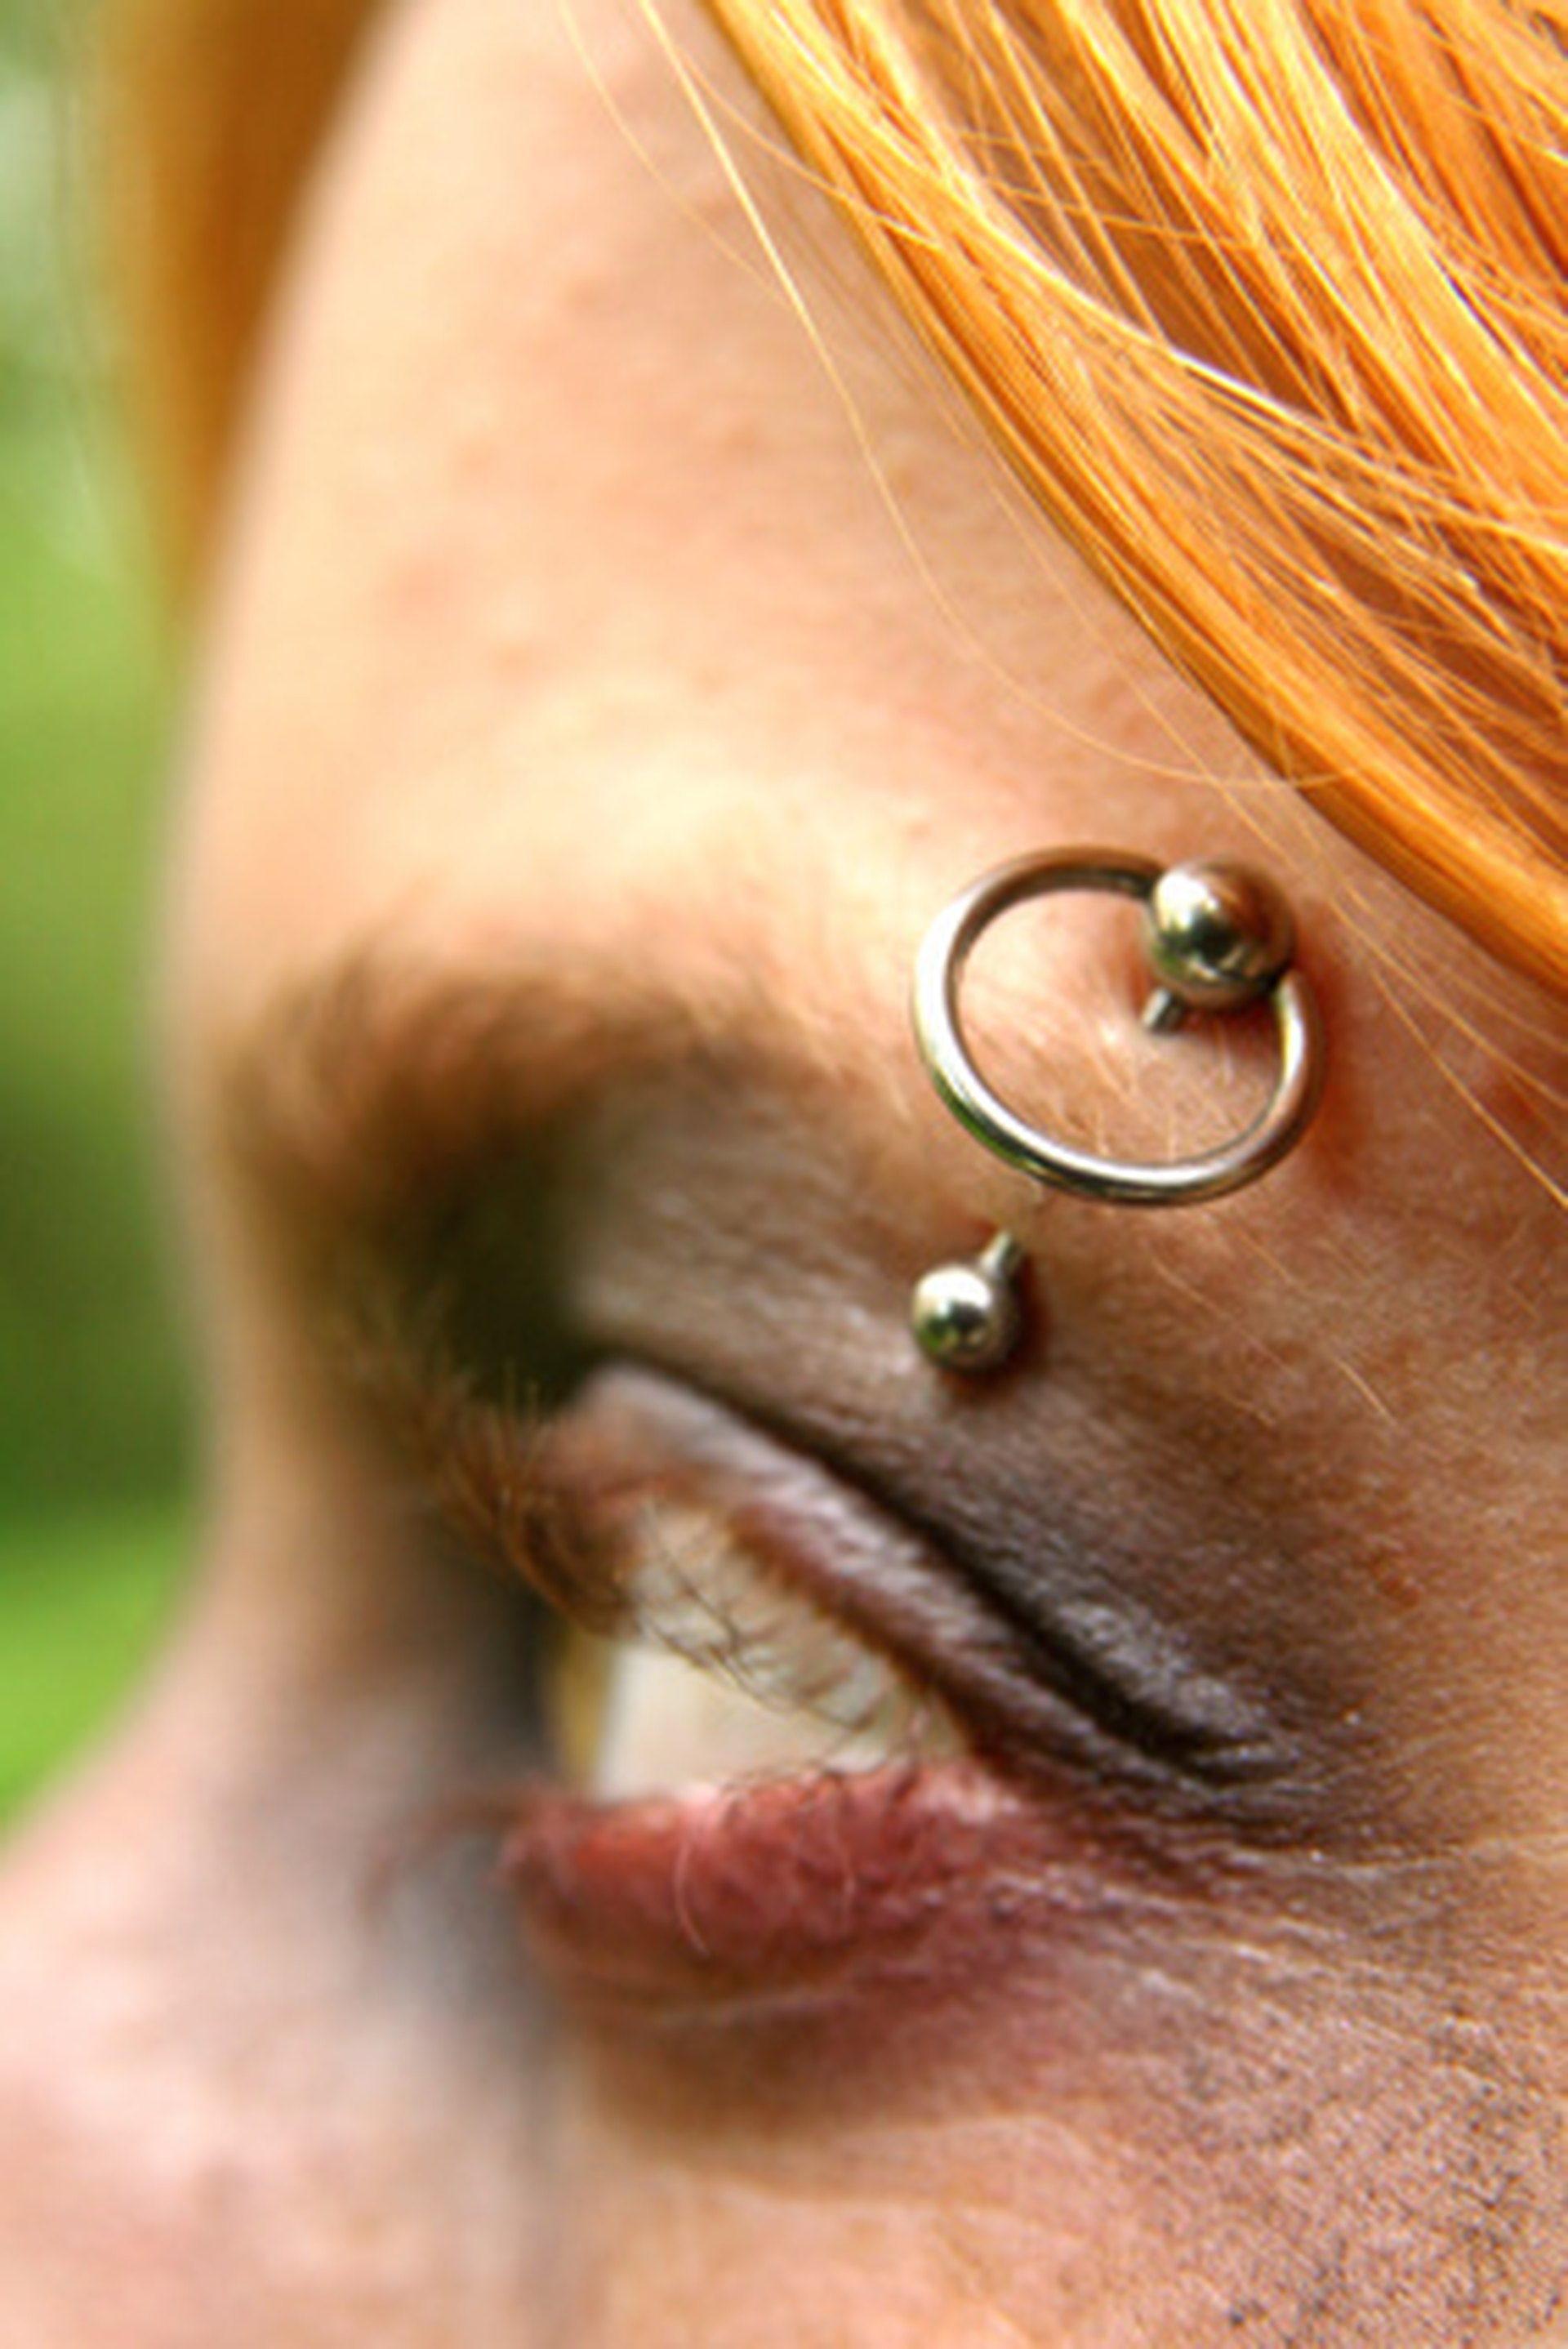 How To Sterilize Body Jewelry Livestrong